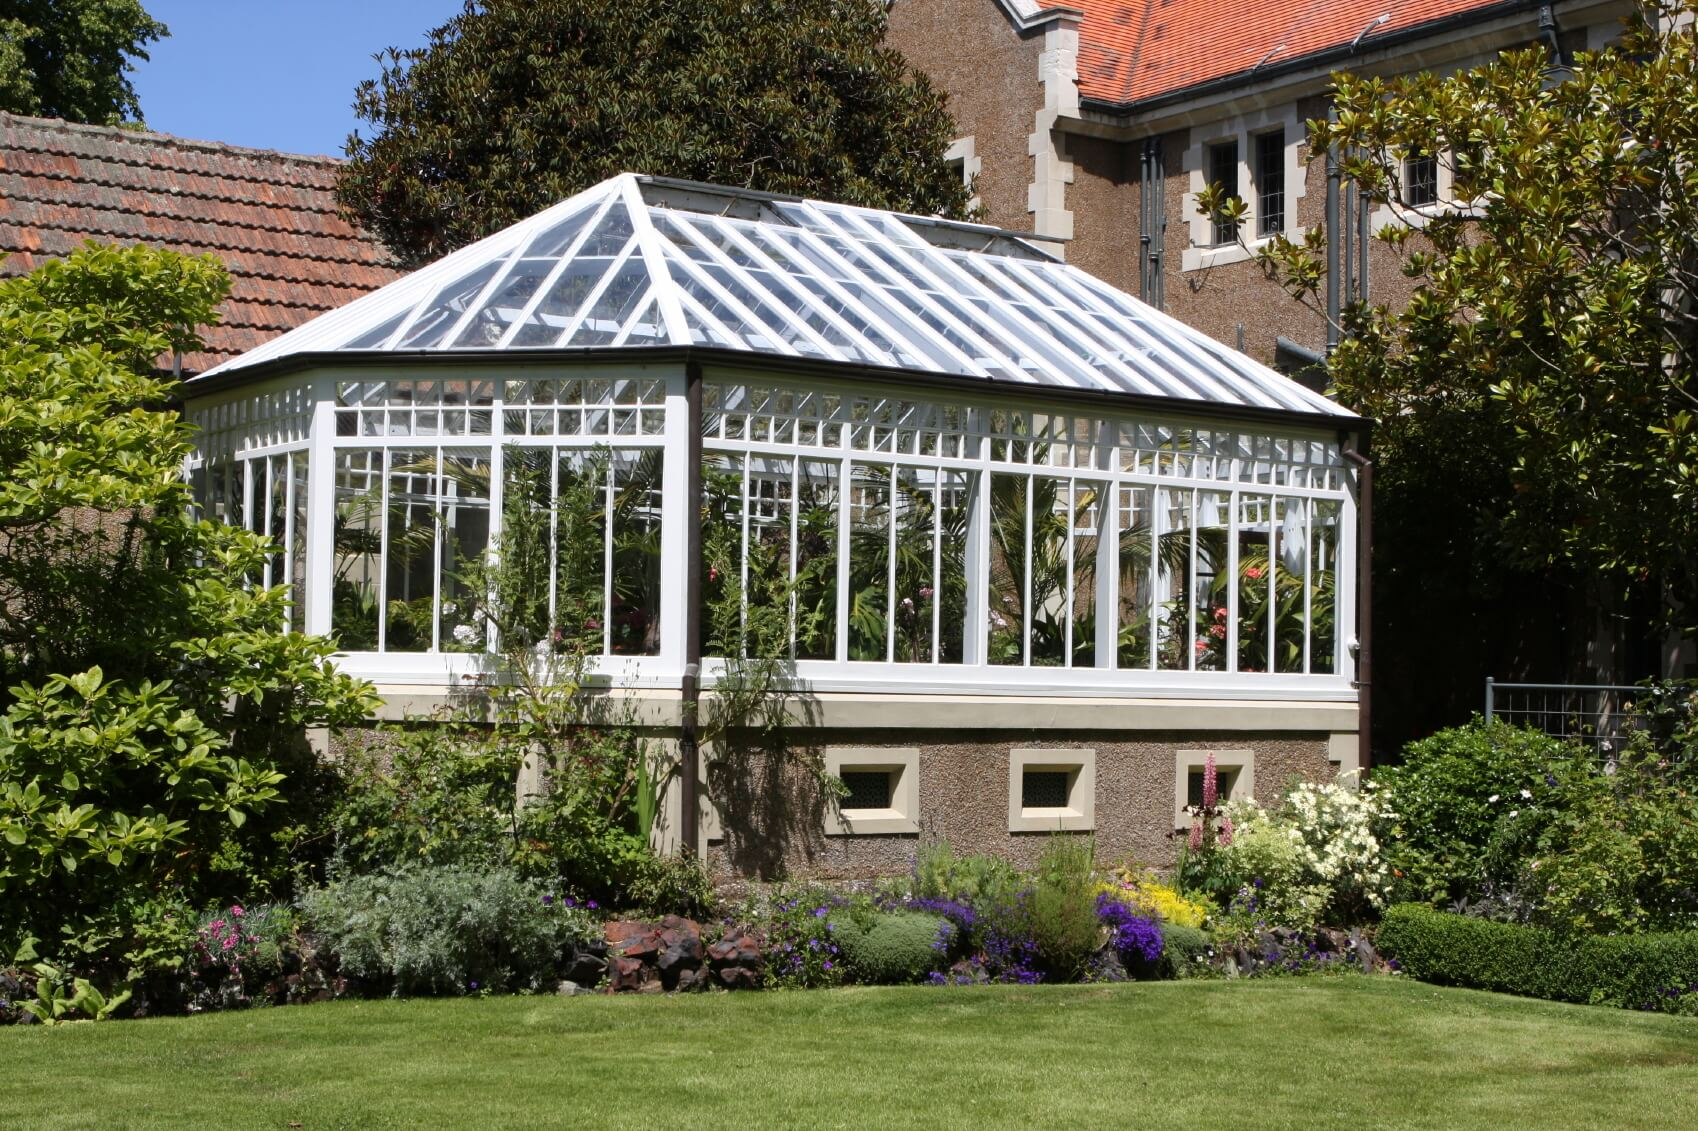 This greenhouse has a sturdy foundation, strong construction, and durable glass glazing. This greenhouse was built to last the ages, and keep the plants going for as long as possible.